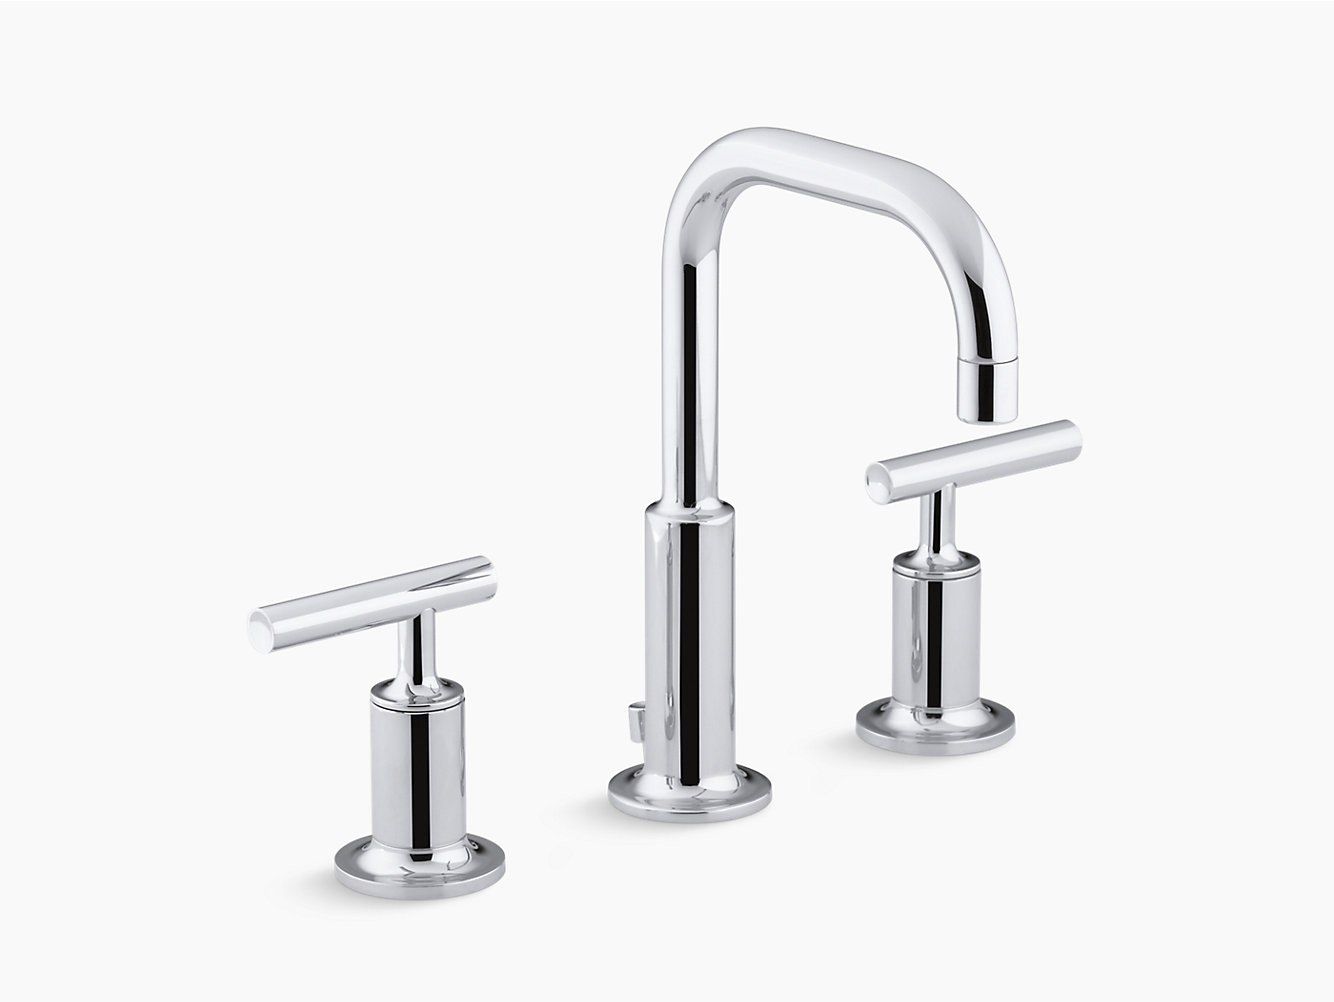 kohler single gallery review purist s spray faucet decorating side kitchen faucets